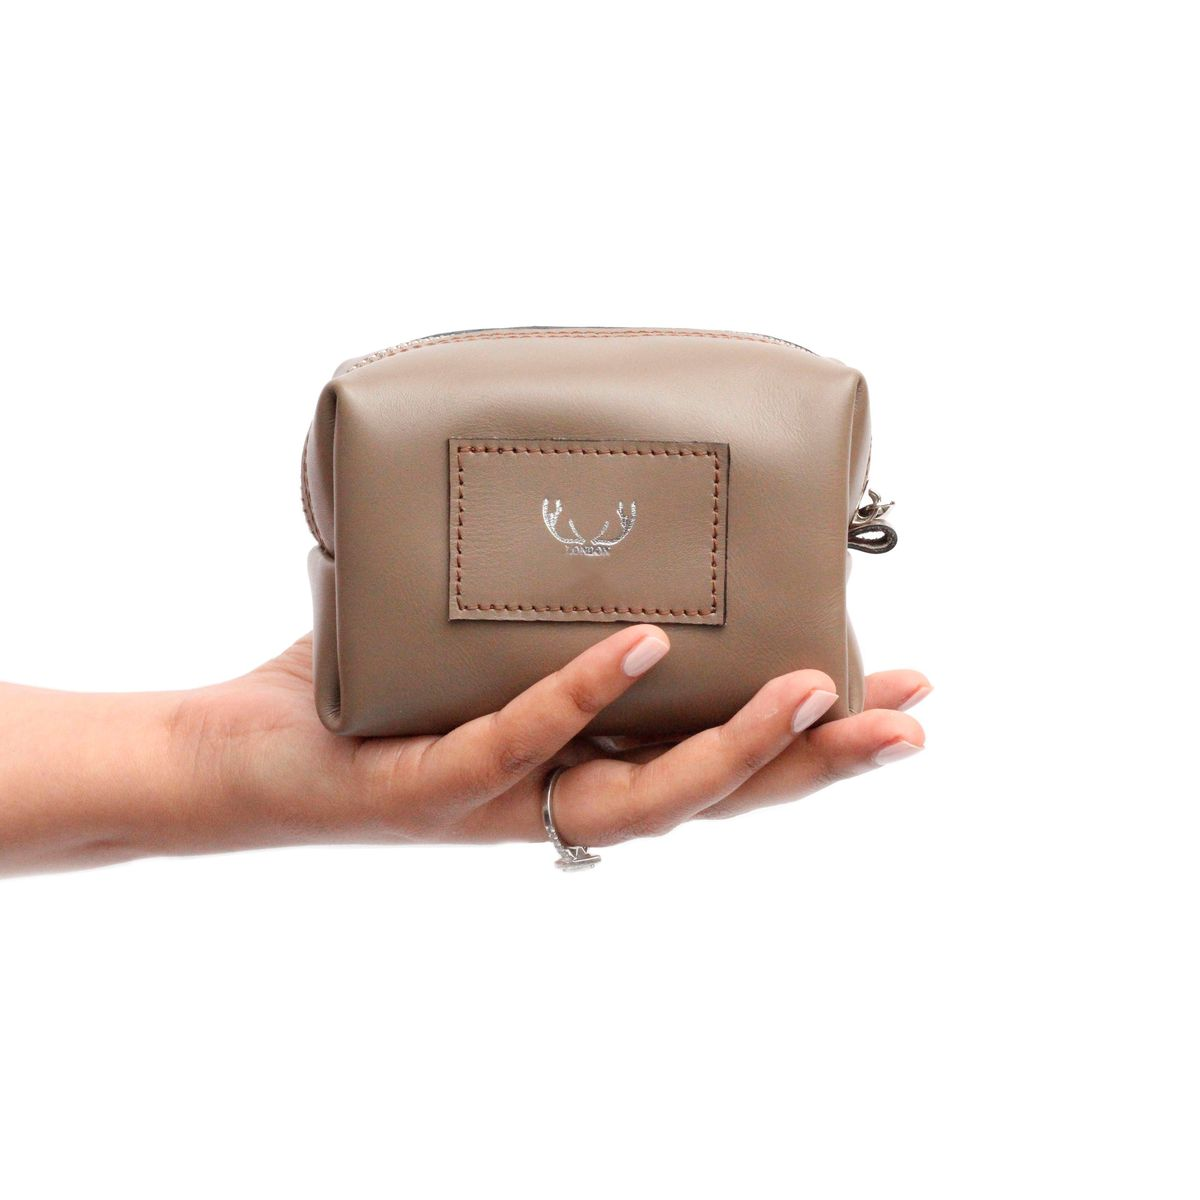 *NEW* Mink Petite Millie Cosmetic Bag - product images  of